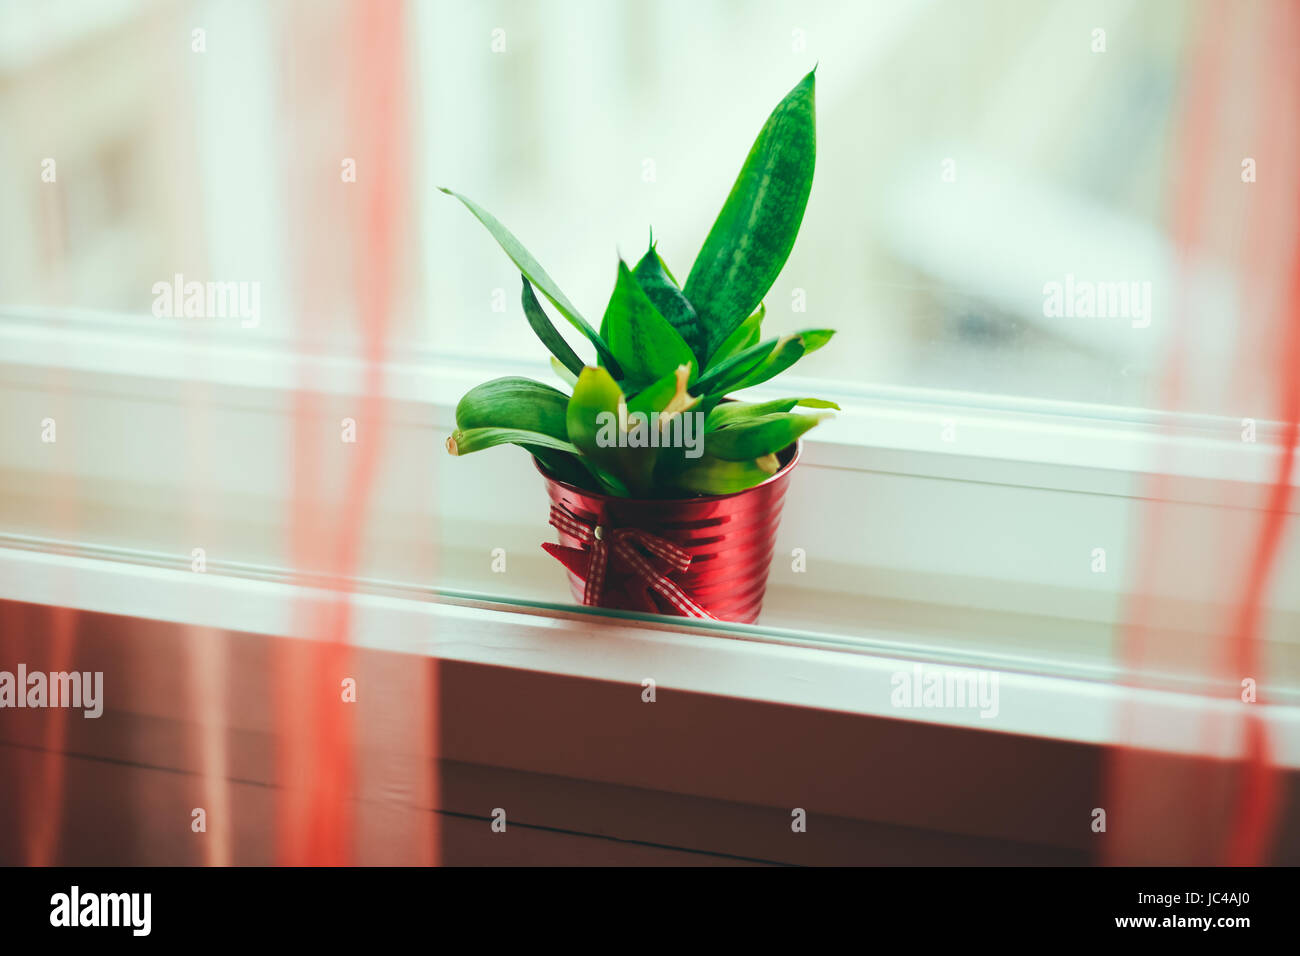 Green Plant In A Red Pot Between Window Frames Sheer Curtains The Frame